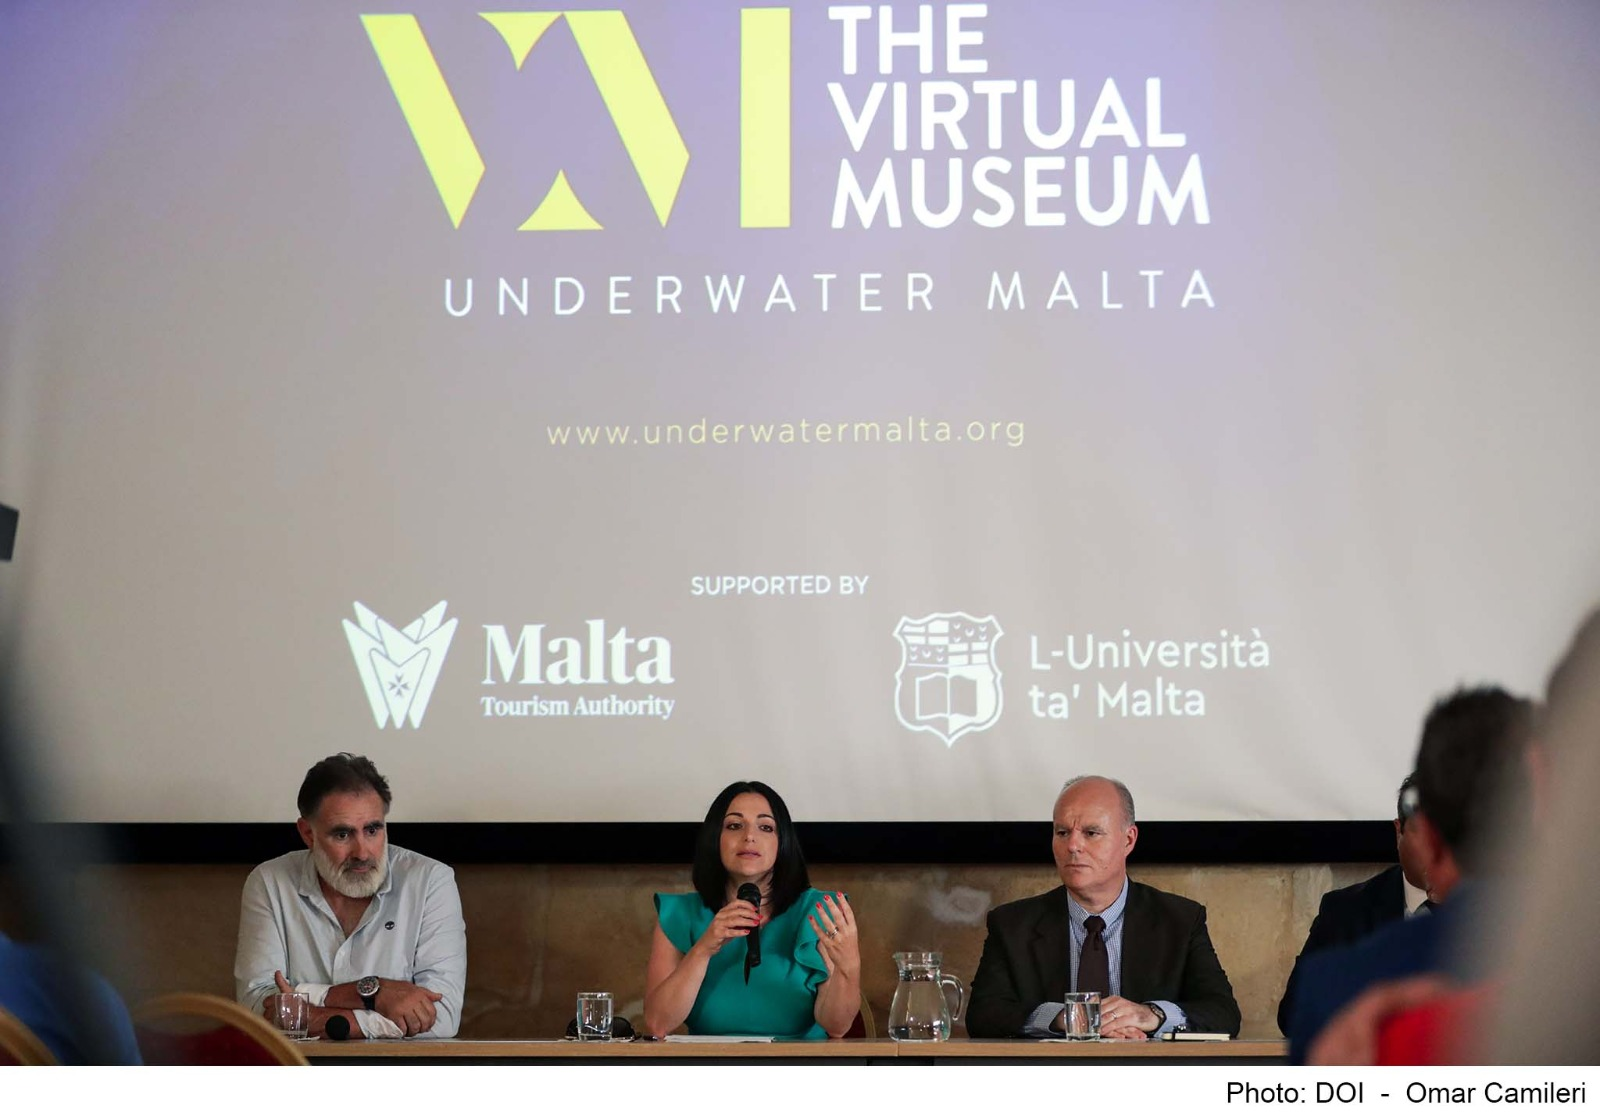 PRESS RELEASE BY THE MINISTRY FOR TOURISM AND CONSUMER PROTECTION: Free virtual access to historic sites underwater